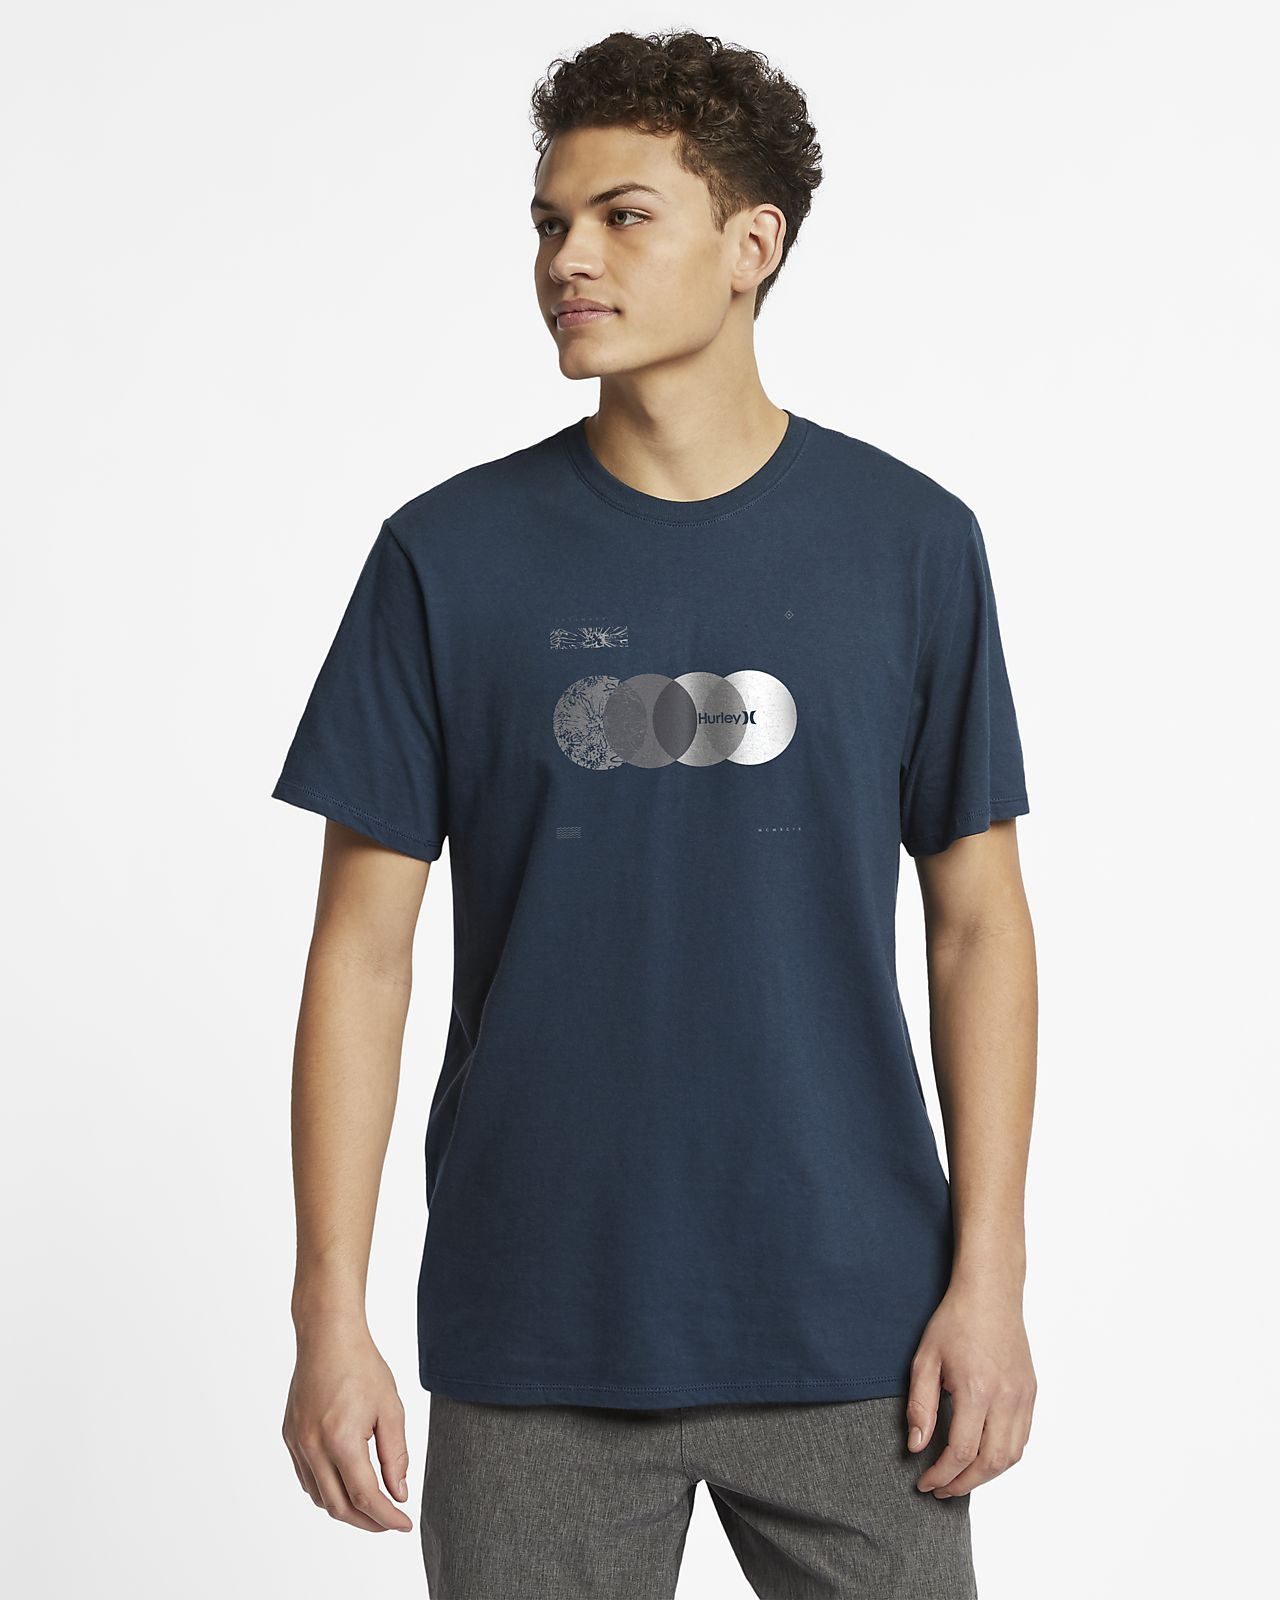 Hurley Premium Shifters Men's T-Shirt